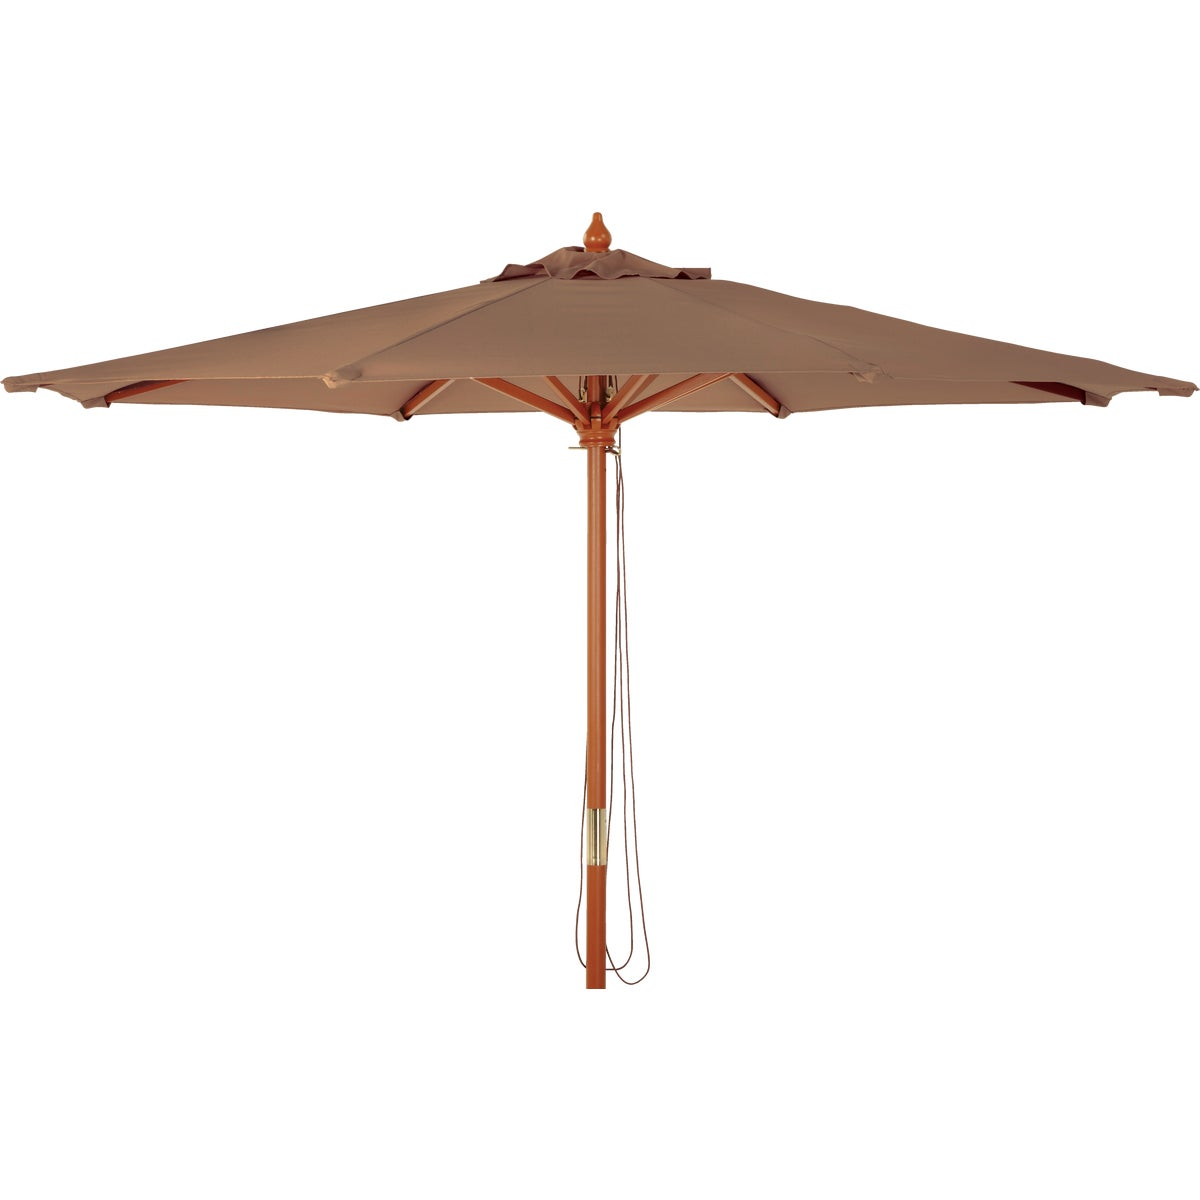 9' MARKET BROWN UMBRELLA - NF01-9-807 by Do it Best